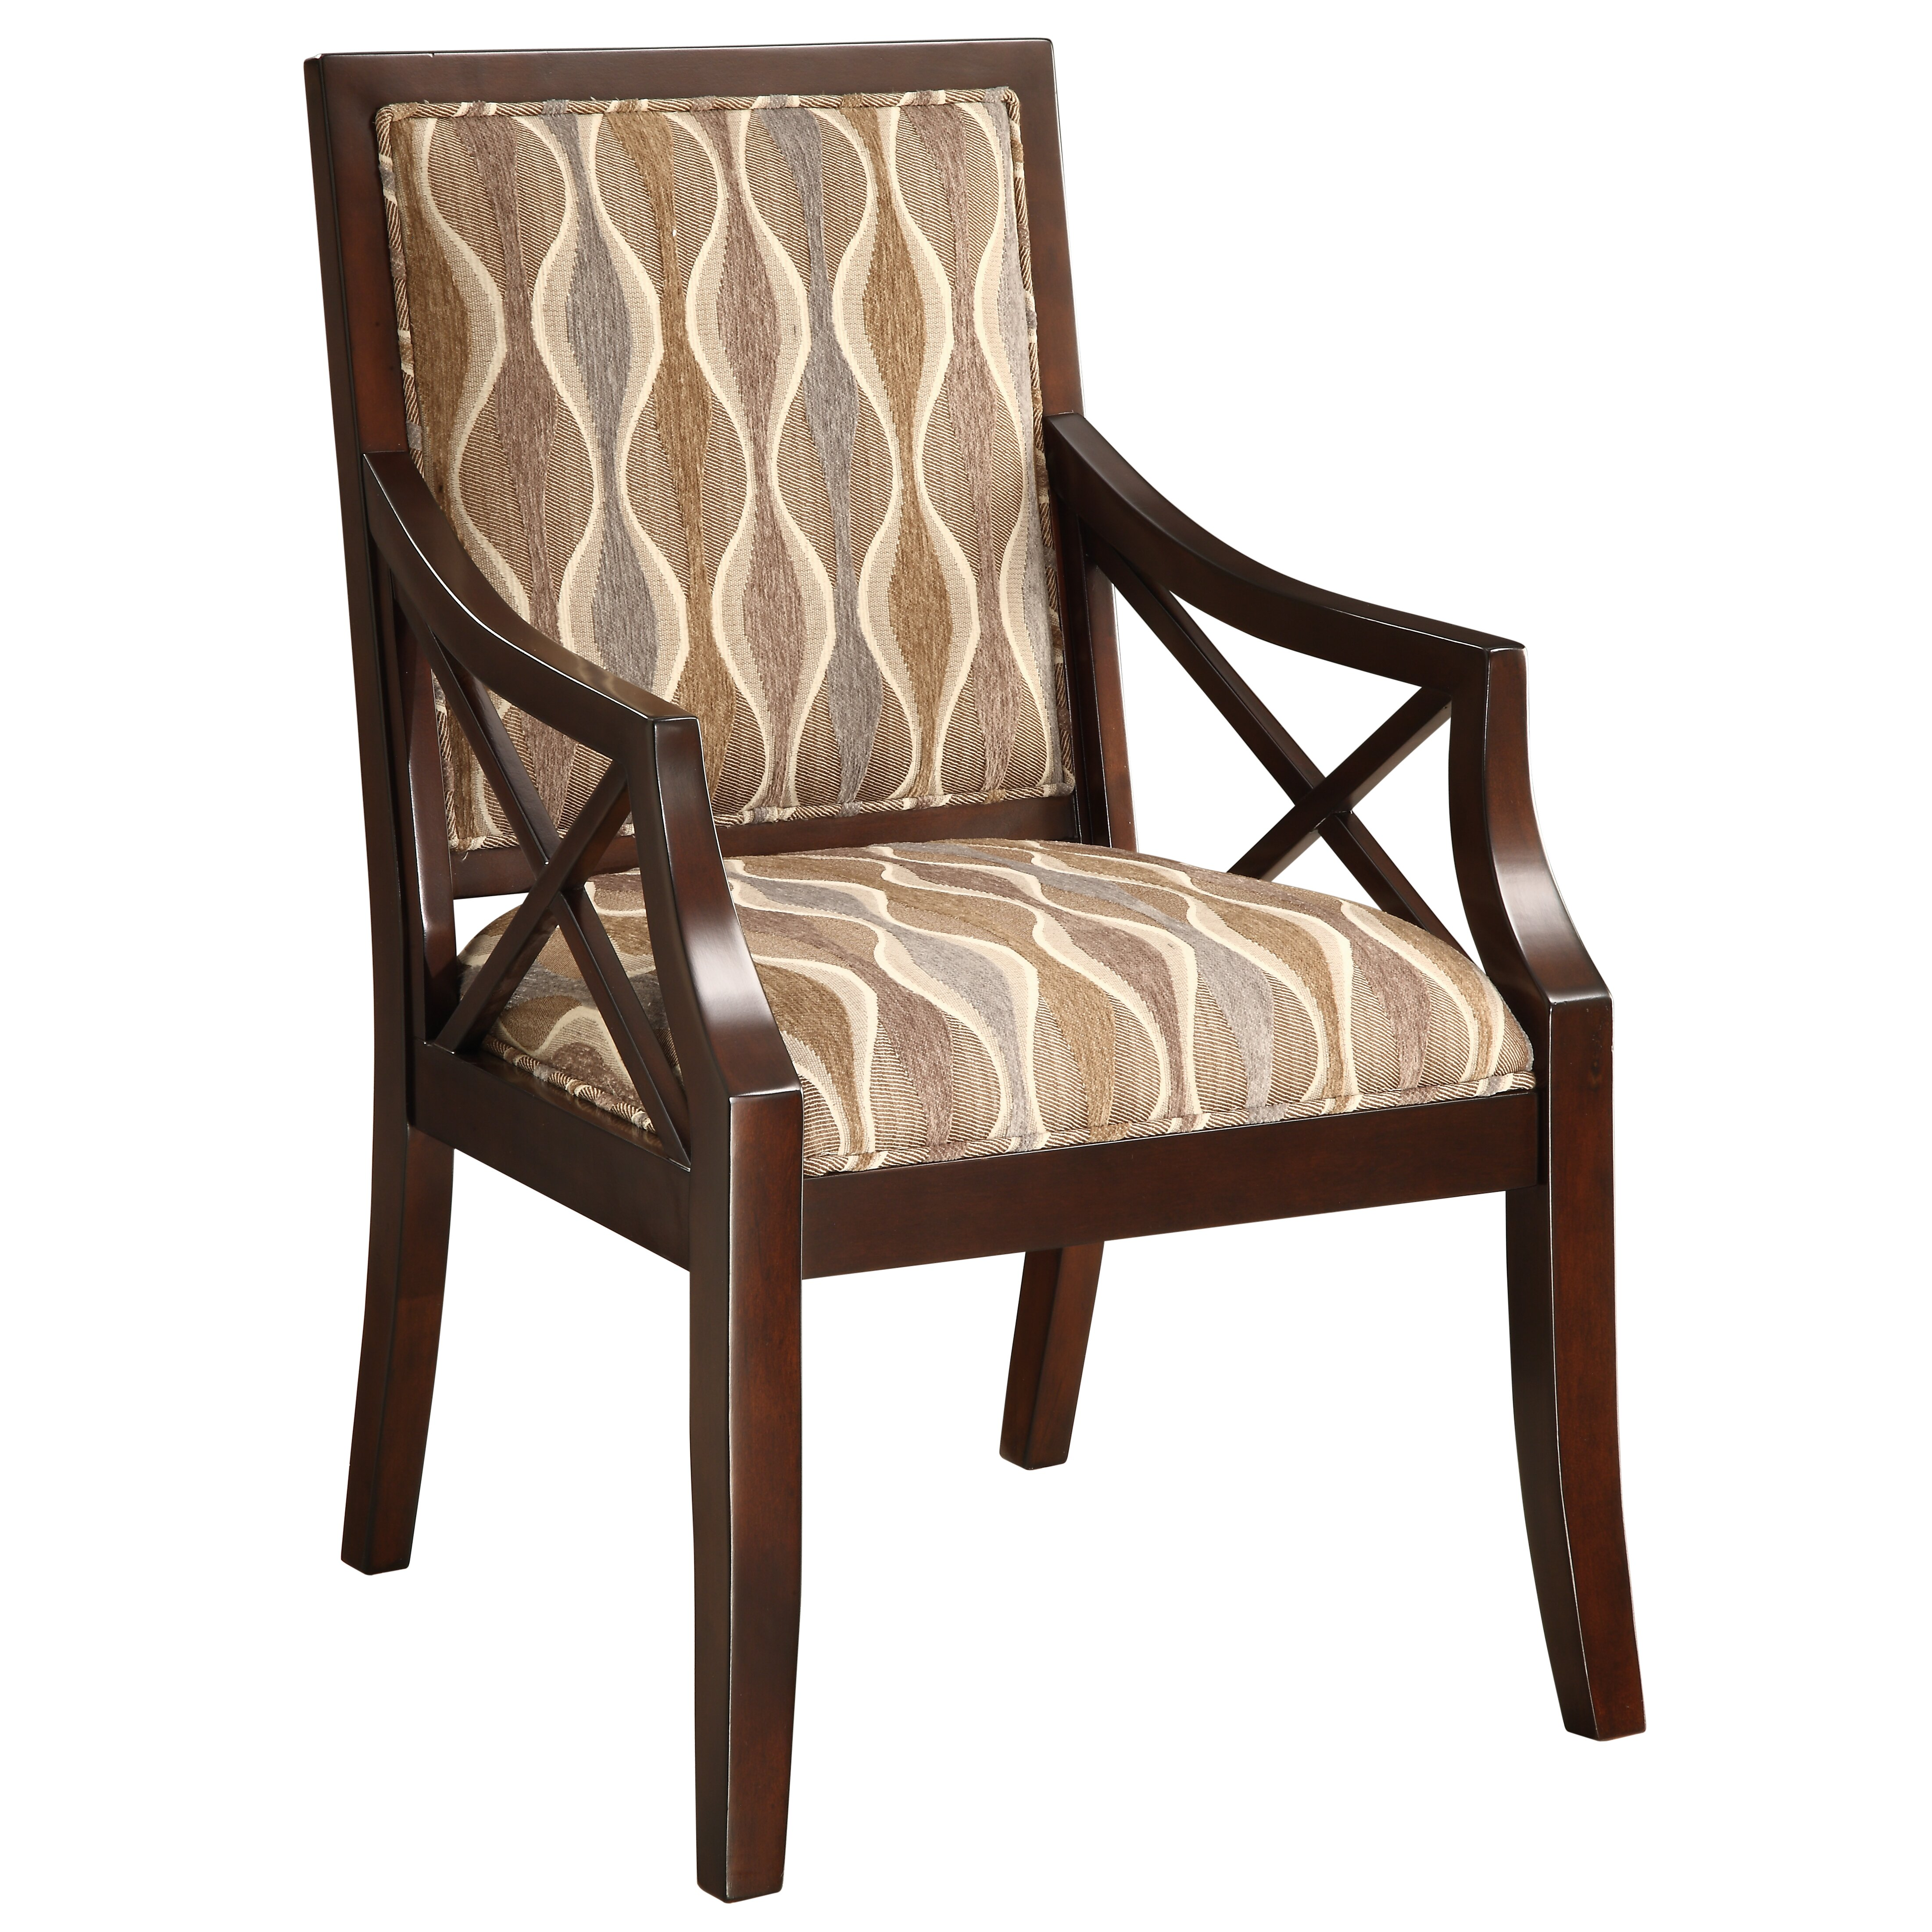 Coastal Accent Chair Beige Fabric Arms: Coast To Coast Imports Fabric Arm Chair In Espresso